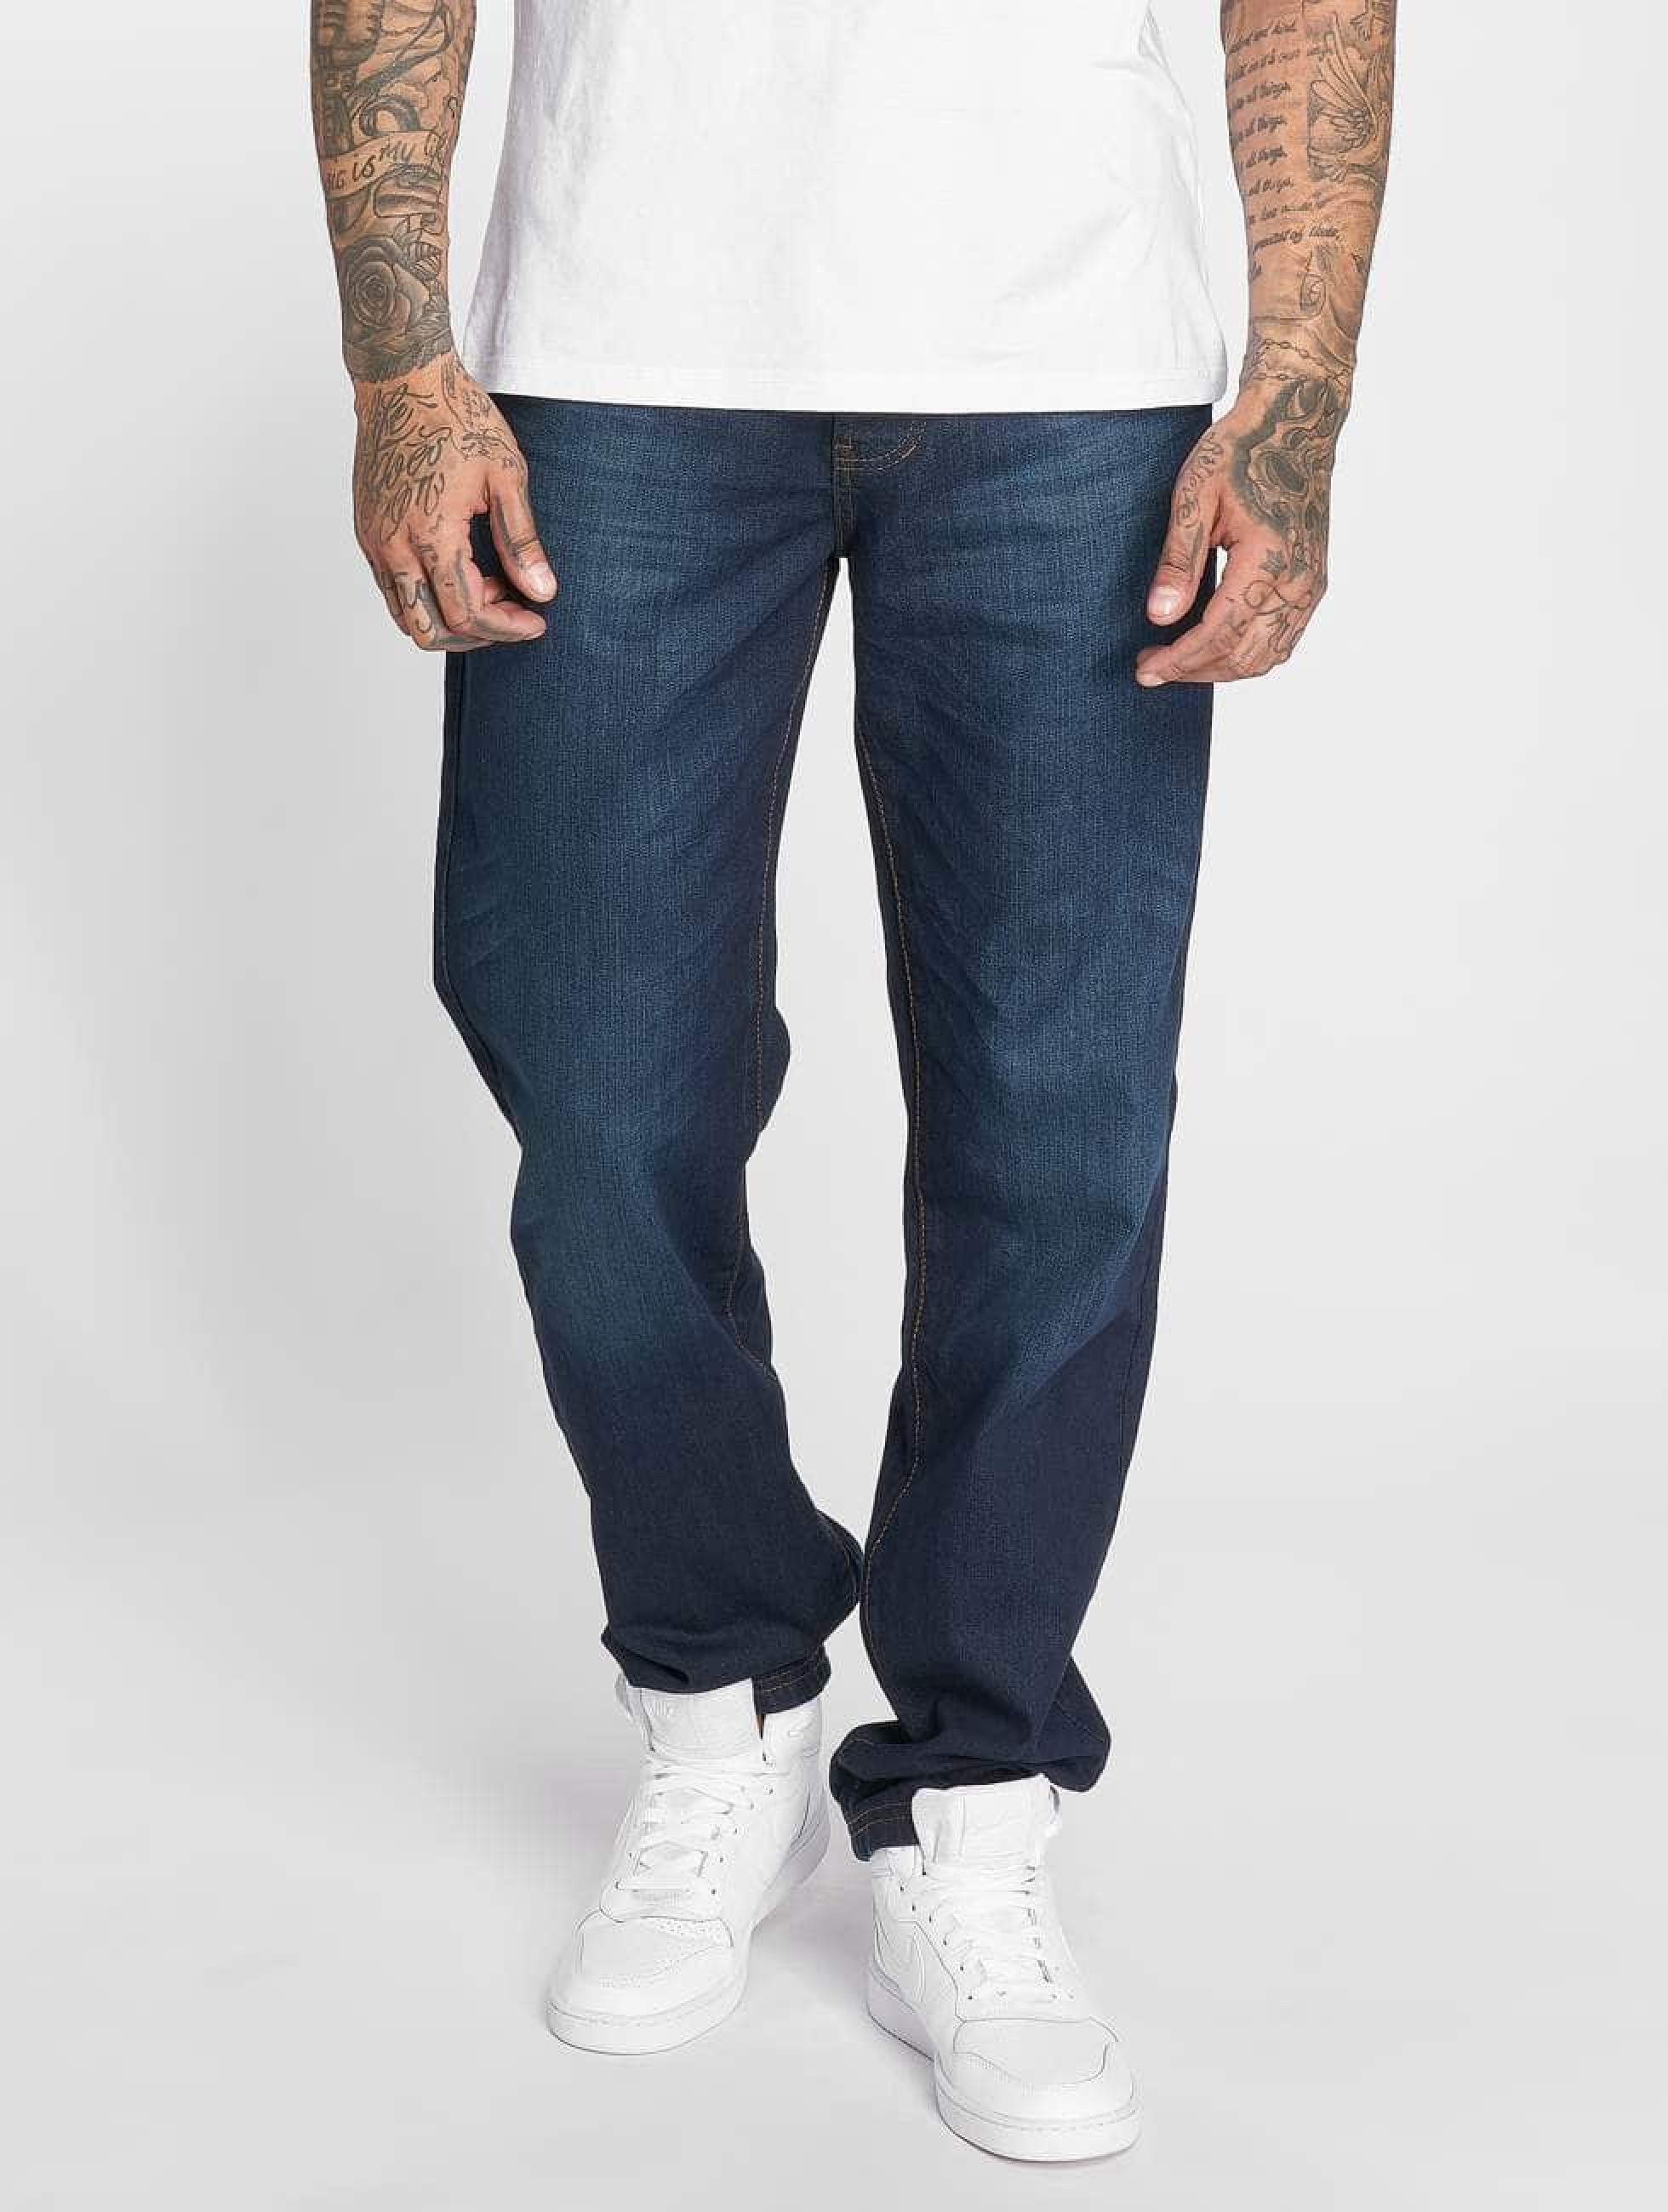 Thug Life / Carrot Fit Jeans B . Denim in blue W 31 L 32